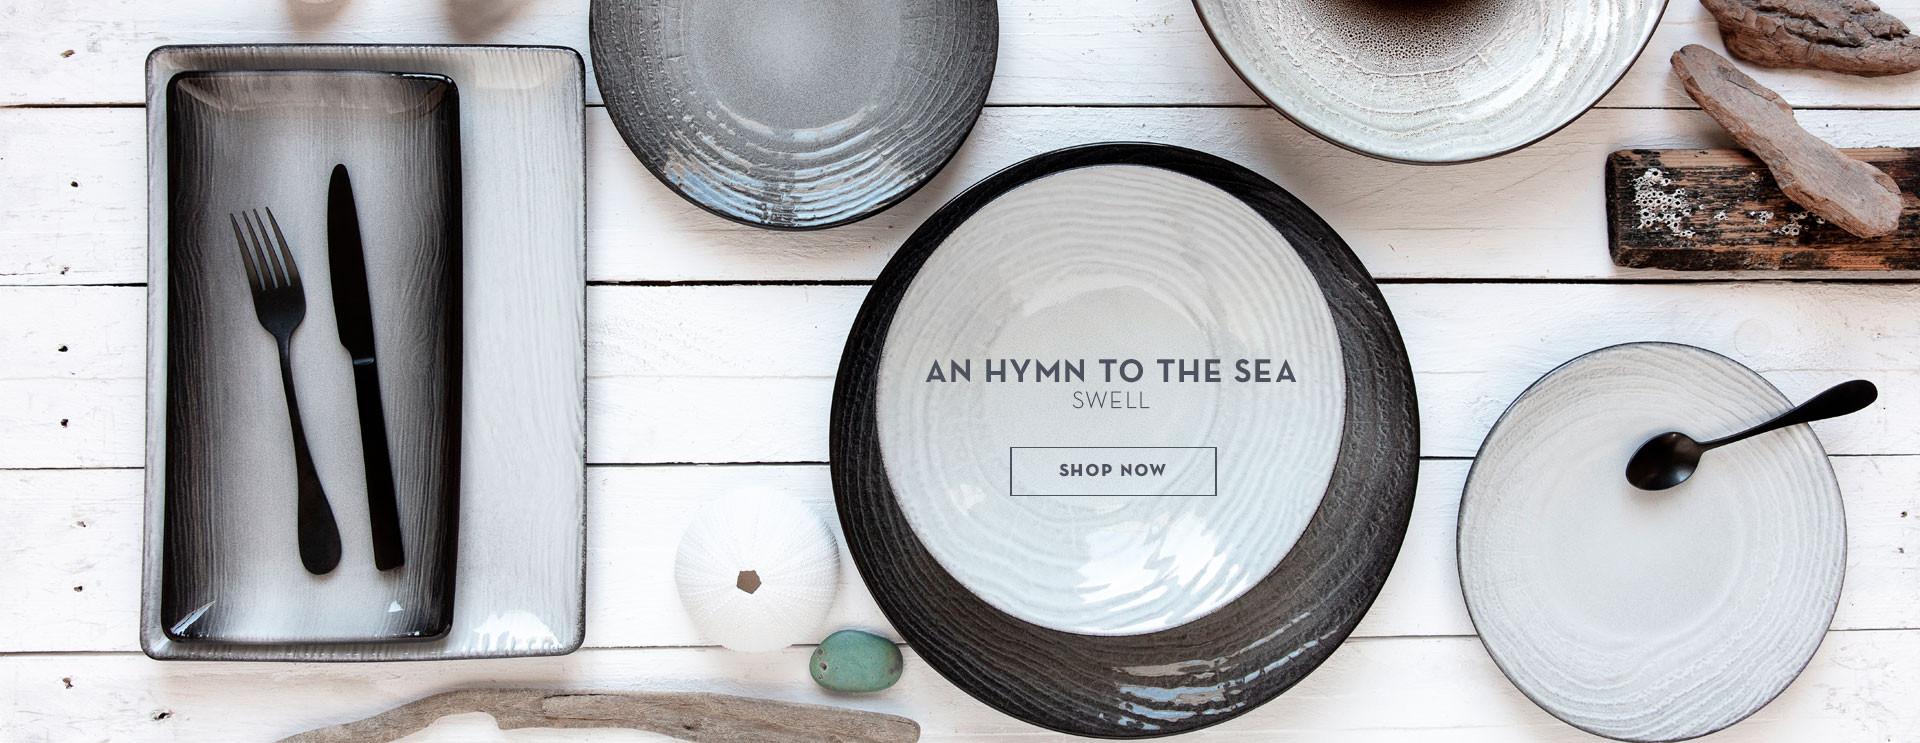 AN HYMN TO THE SEA SWELL